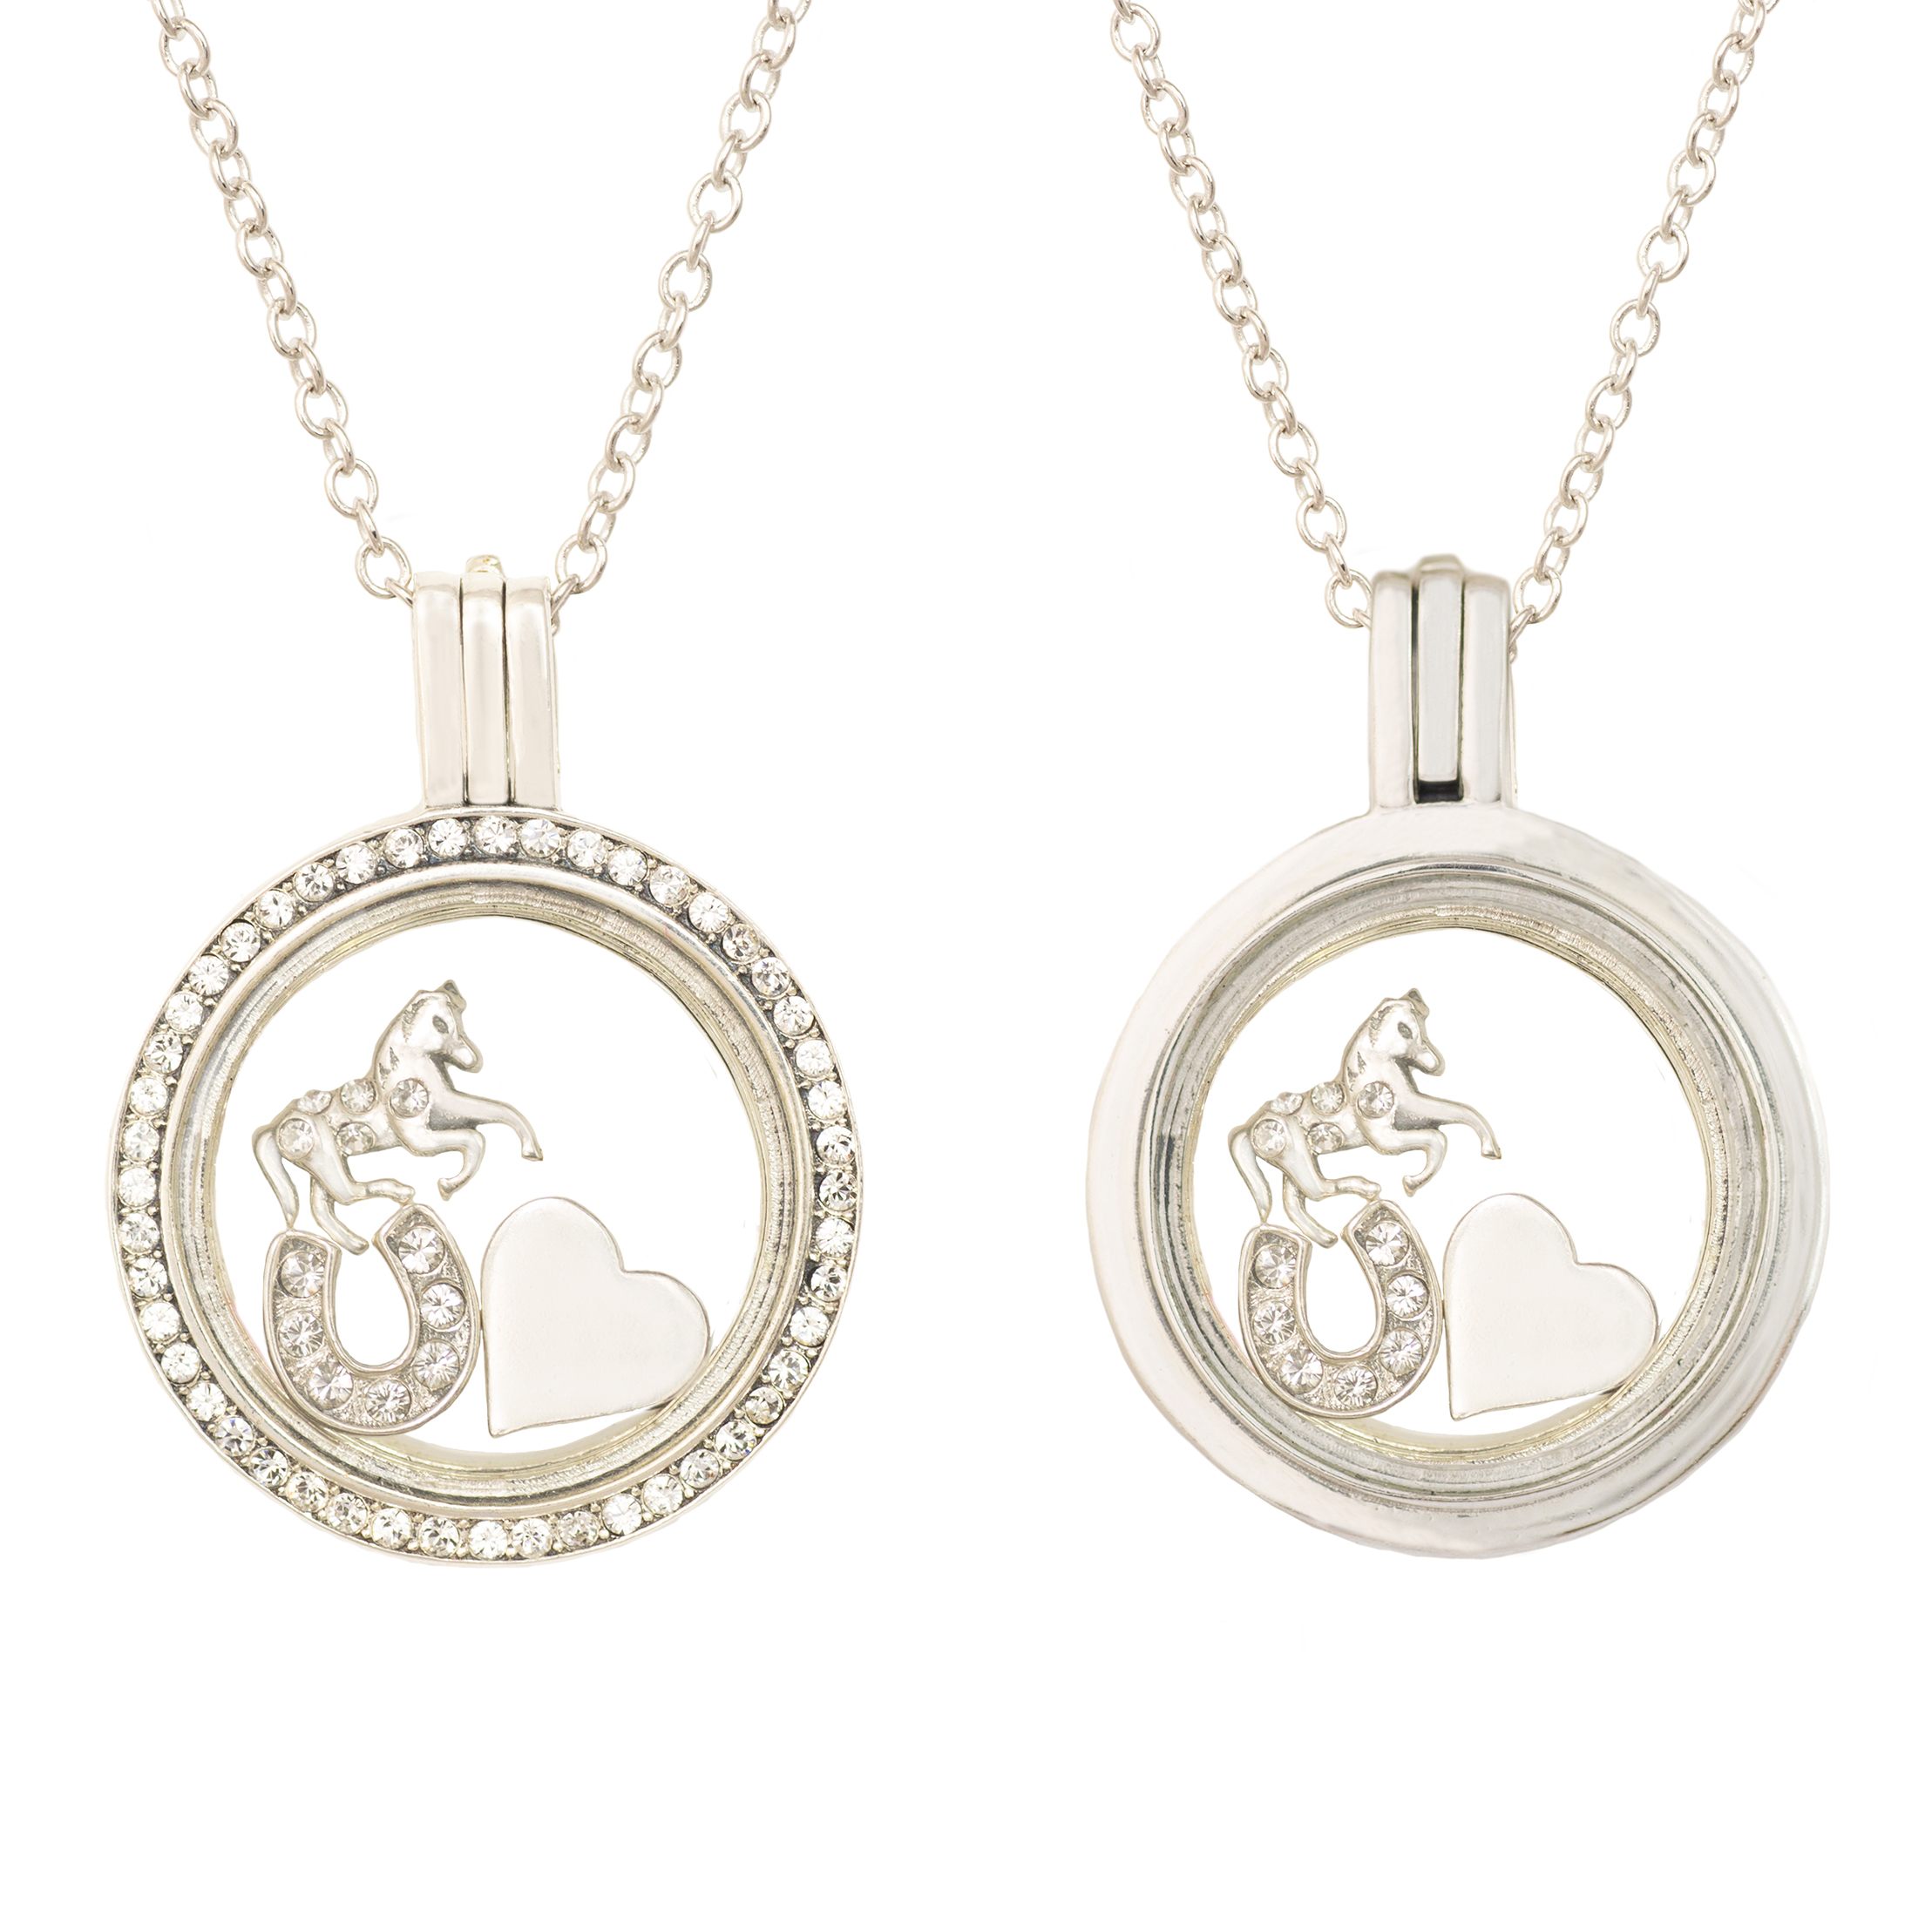 lockets anais ana hot locket more s official diamonds jewellery stockist moments views